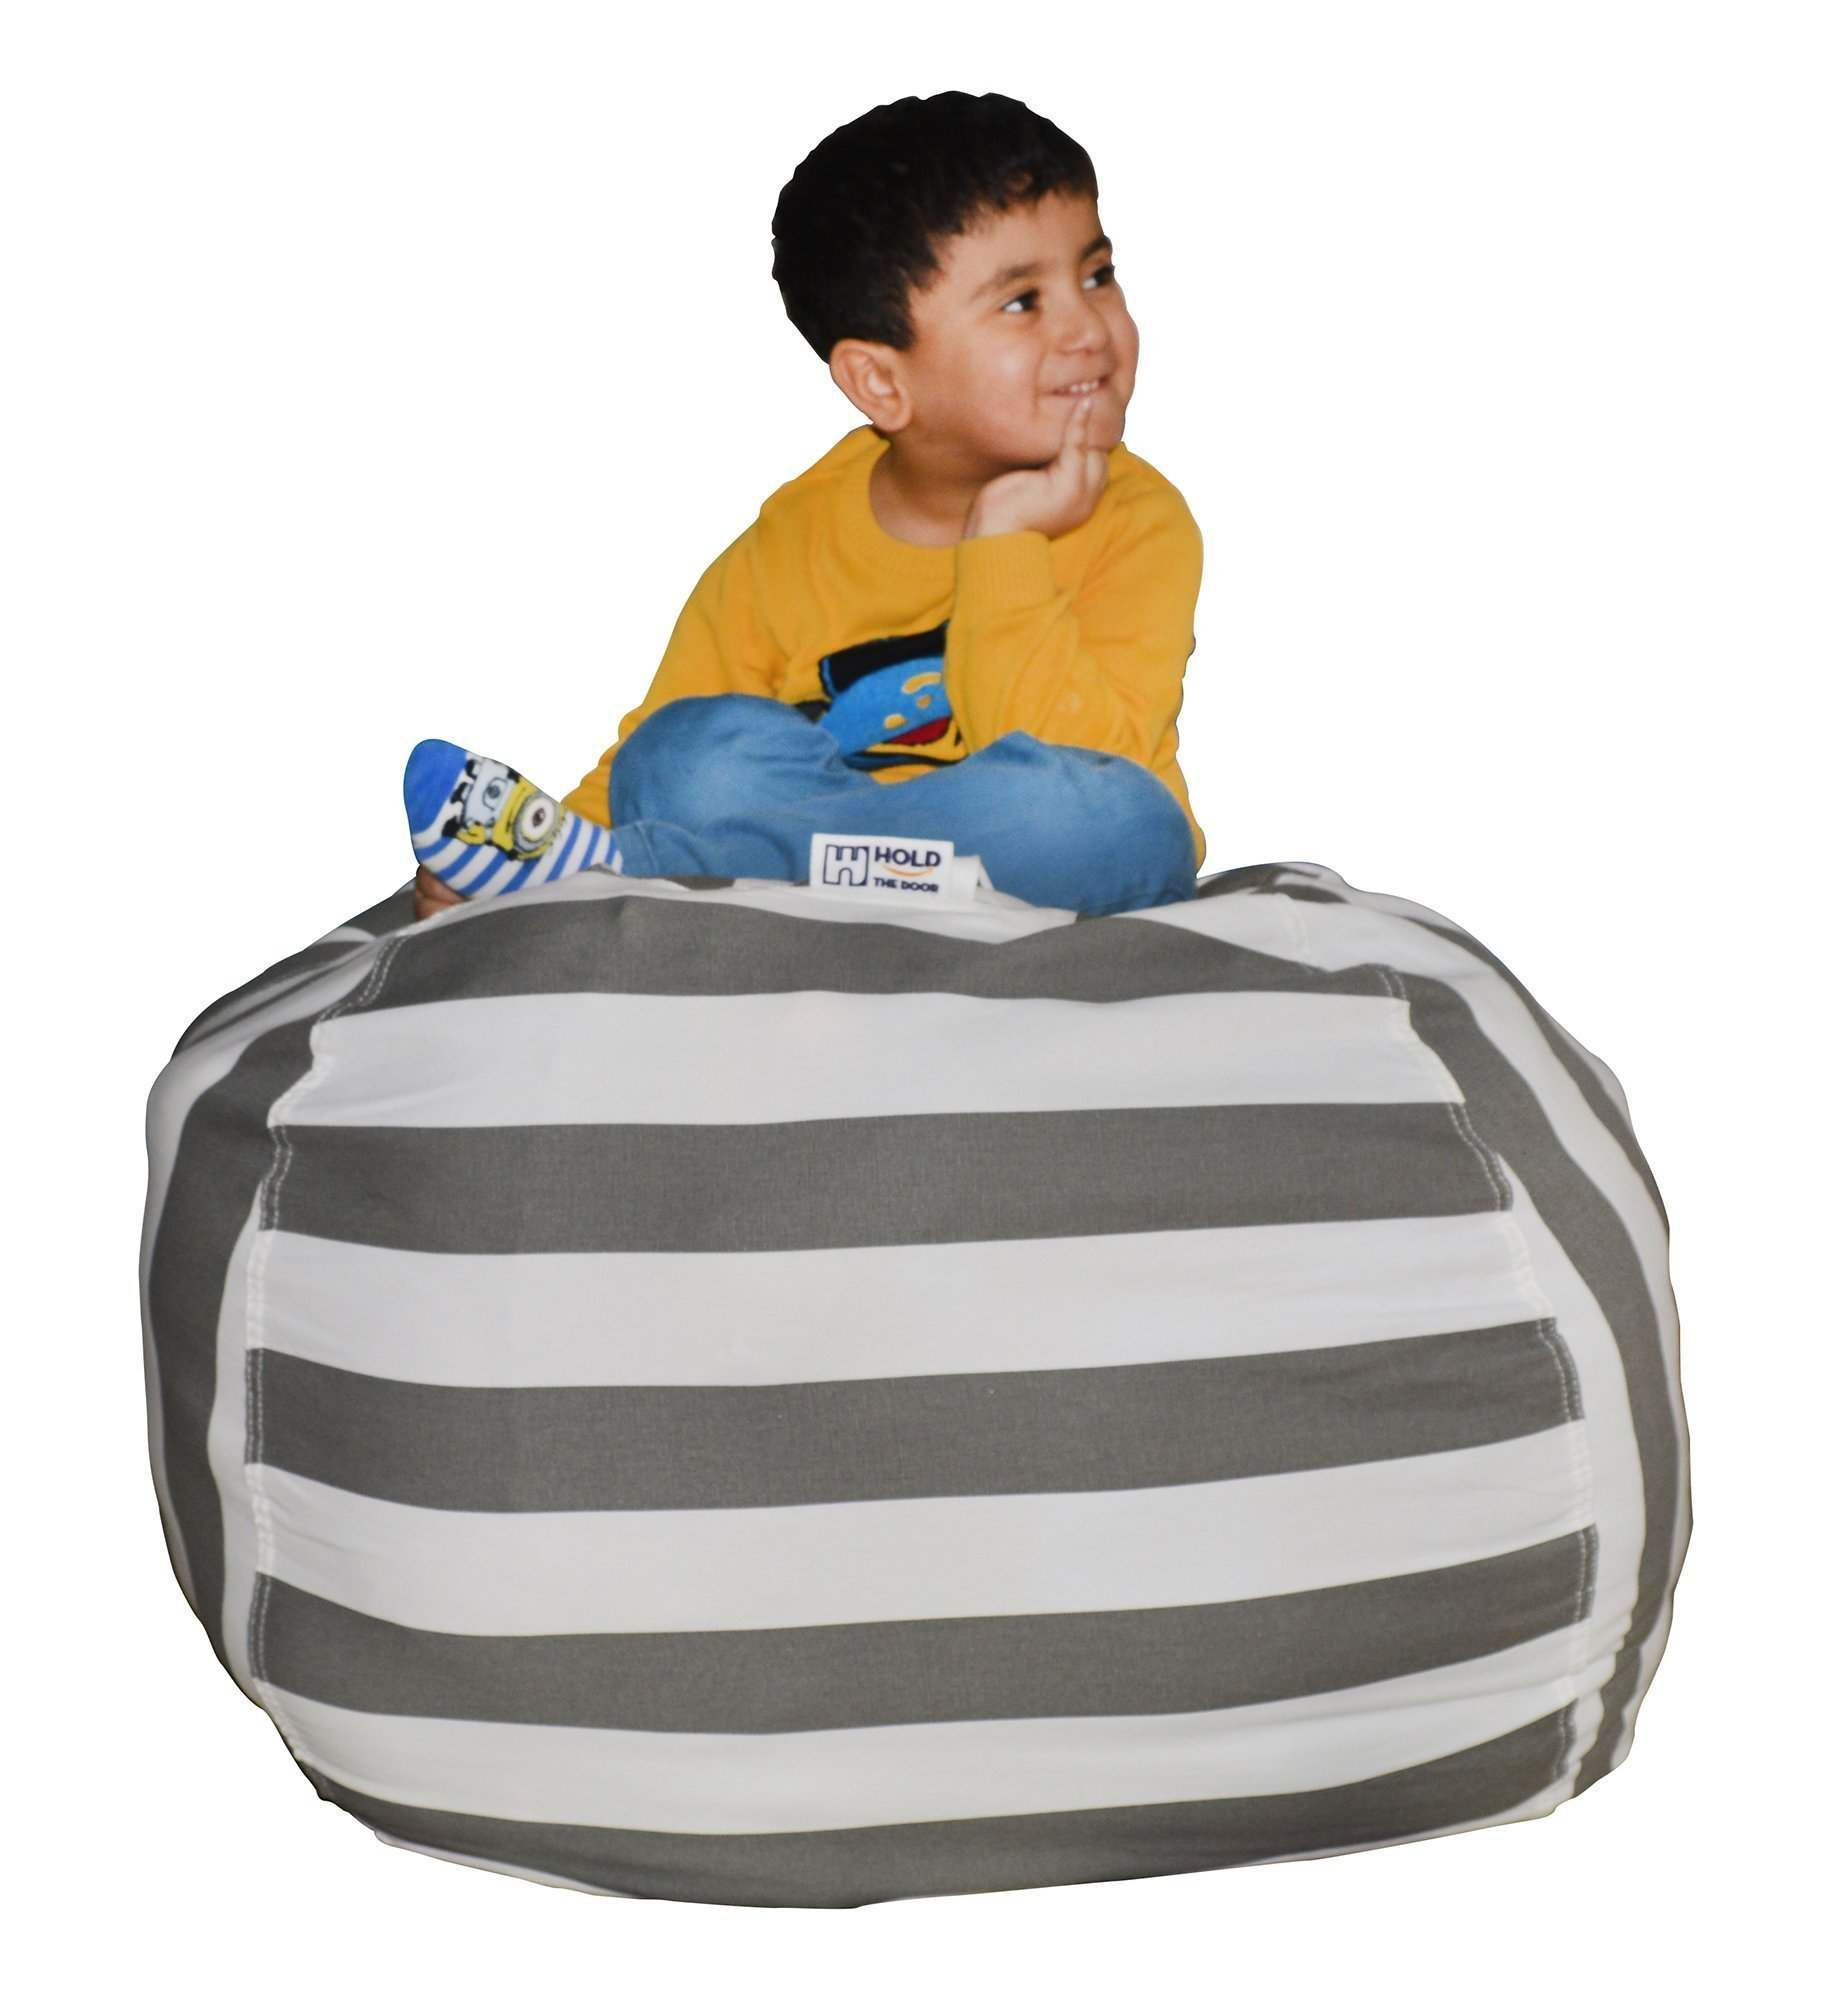 Hold The Door Extra Large Stuffed Animal Storage Bean Bag Chair - Toy Organizer & Comfy Chair - Perfect Storage Solution for Plush Toys, Blankets, Towels & Clothes - (Grey Striped, 38'') by Hold The Door (Image #2)